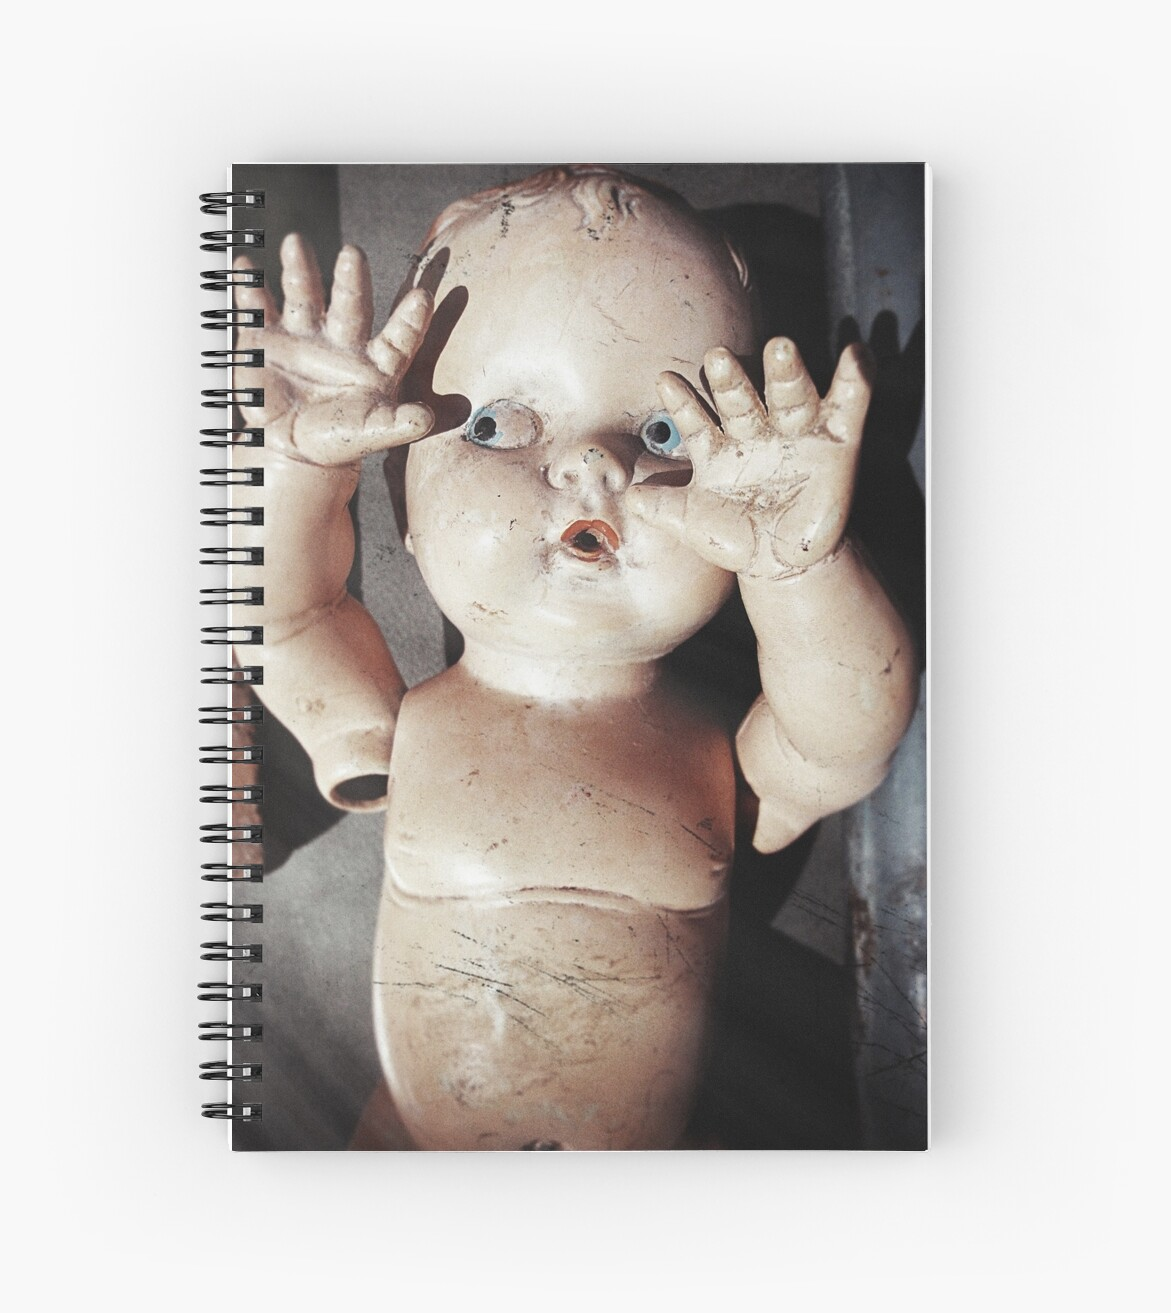 """""""I see you"""" Creepy Scared Doll with Hands Up by ashley hutchinson"""